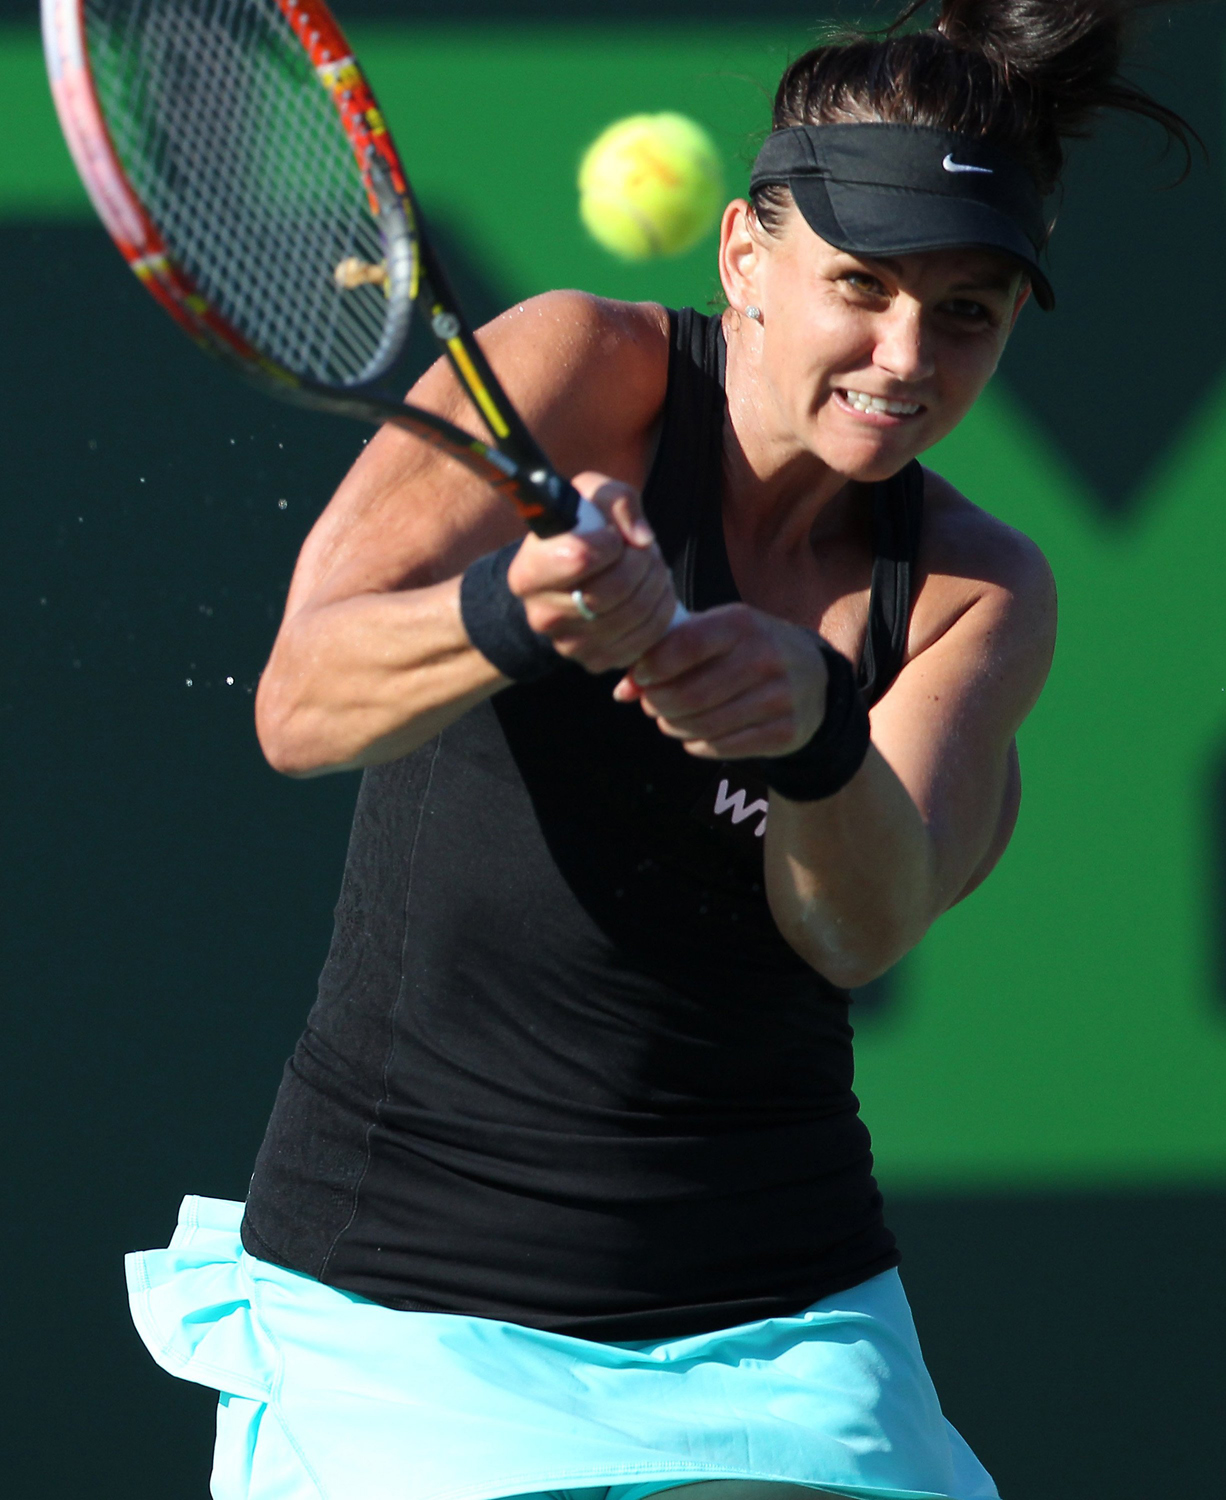 Australia's Casey Dellacqua returns the ball to USA's Venus Williams during the Sony Open tennis tournament in Key Biscayne, Florida, on Sunday, March 23, 2014.